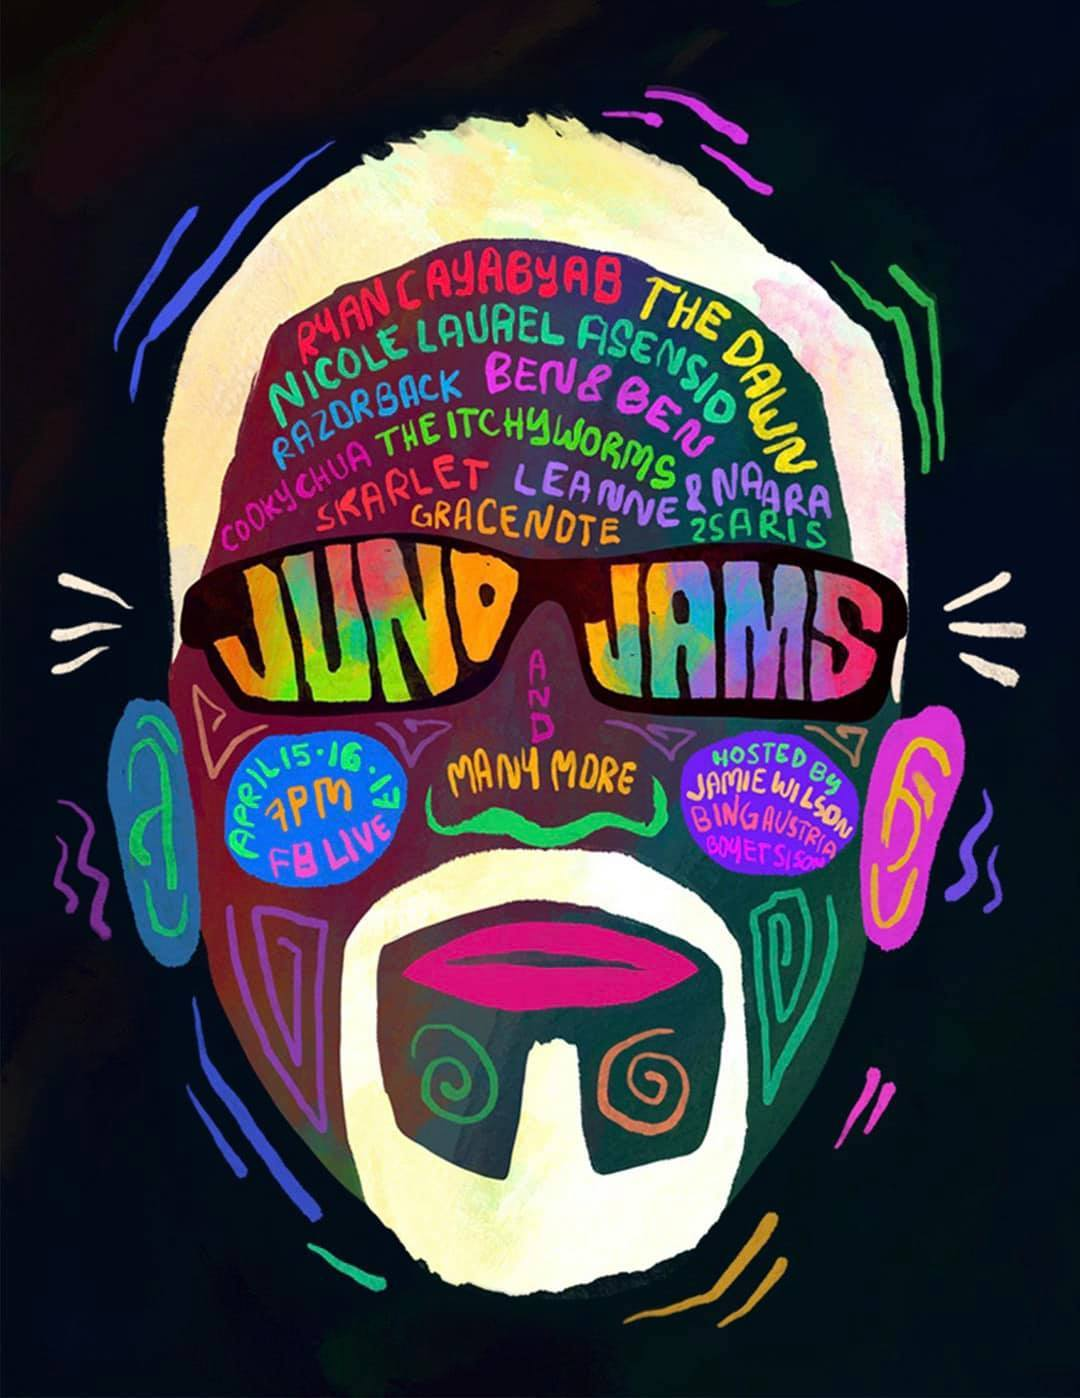 JUNO JAMS: OPM All-Star Casts Joined Forces to Pull Off a 3-Day Online Benefit Music Festival